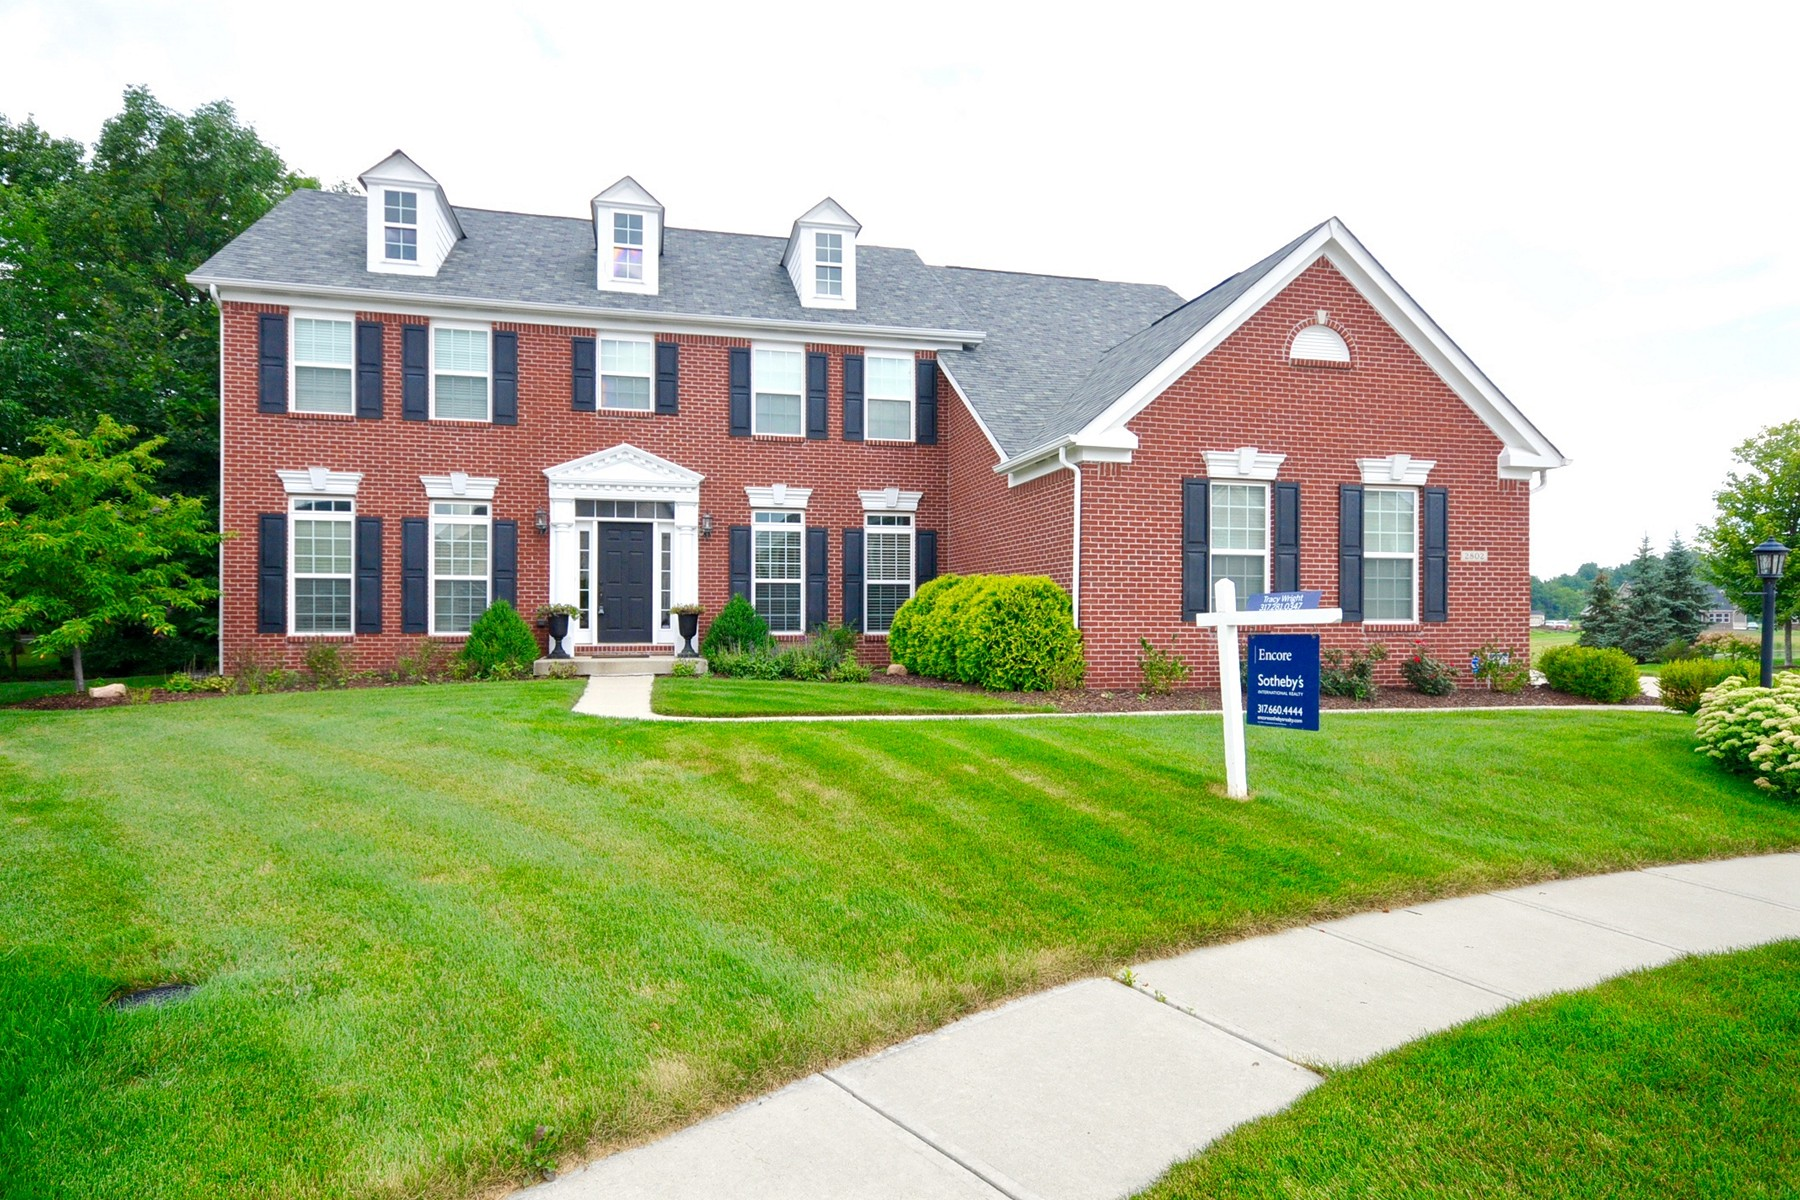 Vivienda unifamiliar por un Venta en Charming Home on Quite Cul-De-Sac 2802 Newbury Court Zionsville, Indiana 46077 Estados Unidos